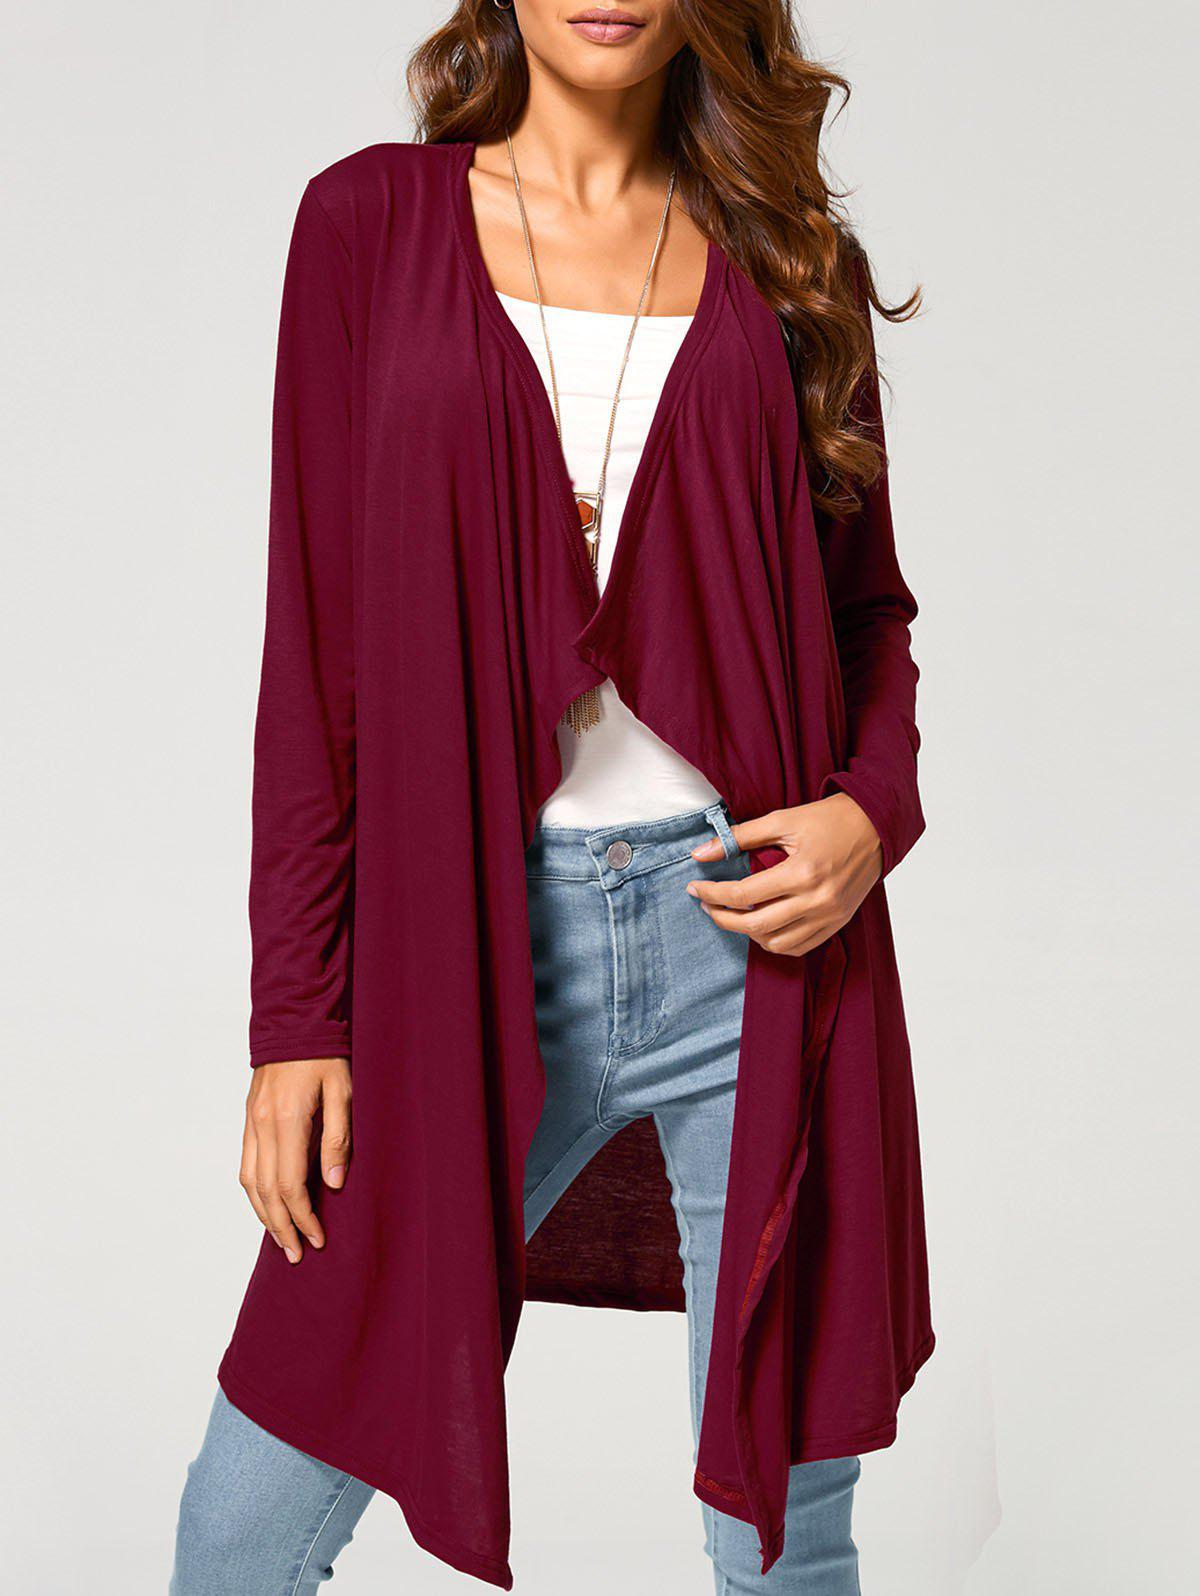 Long Duster Draped CardiganWomen<br><br><br>Size: XL<br>Color: WINE RED